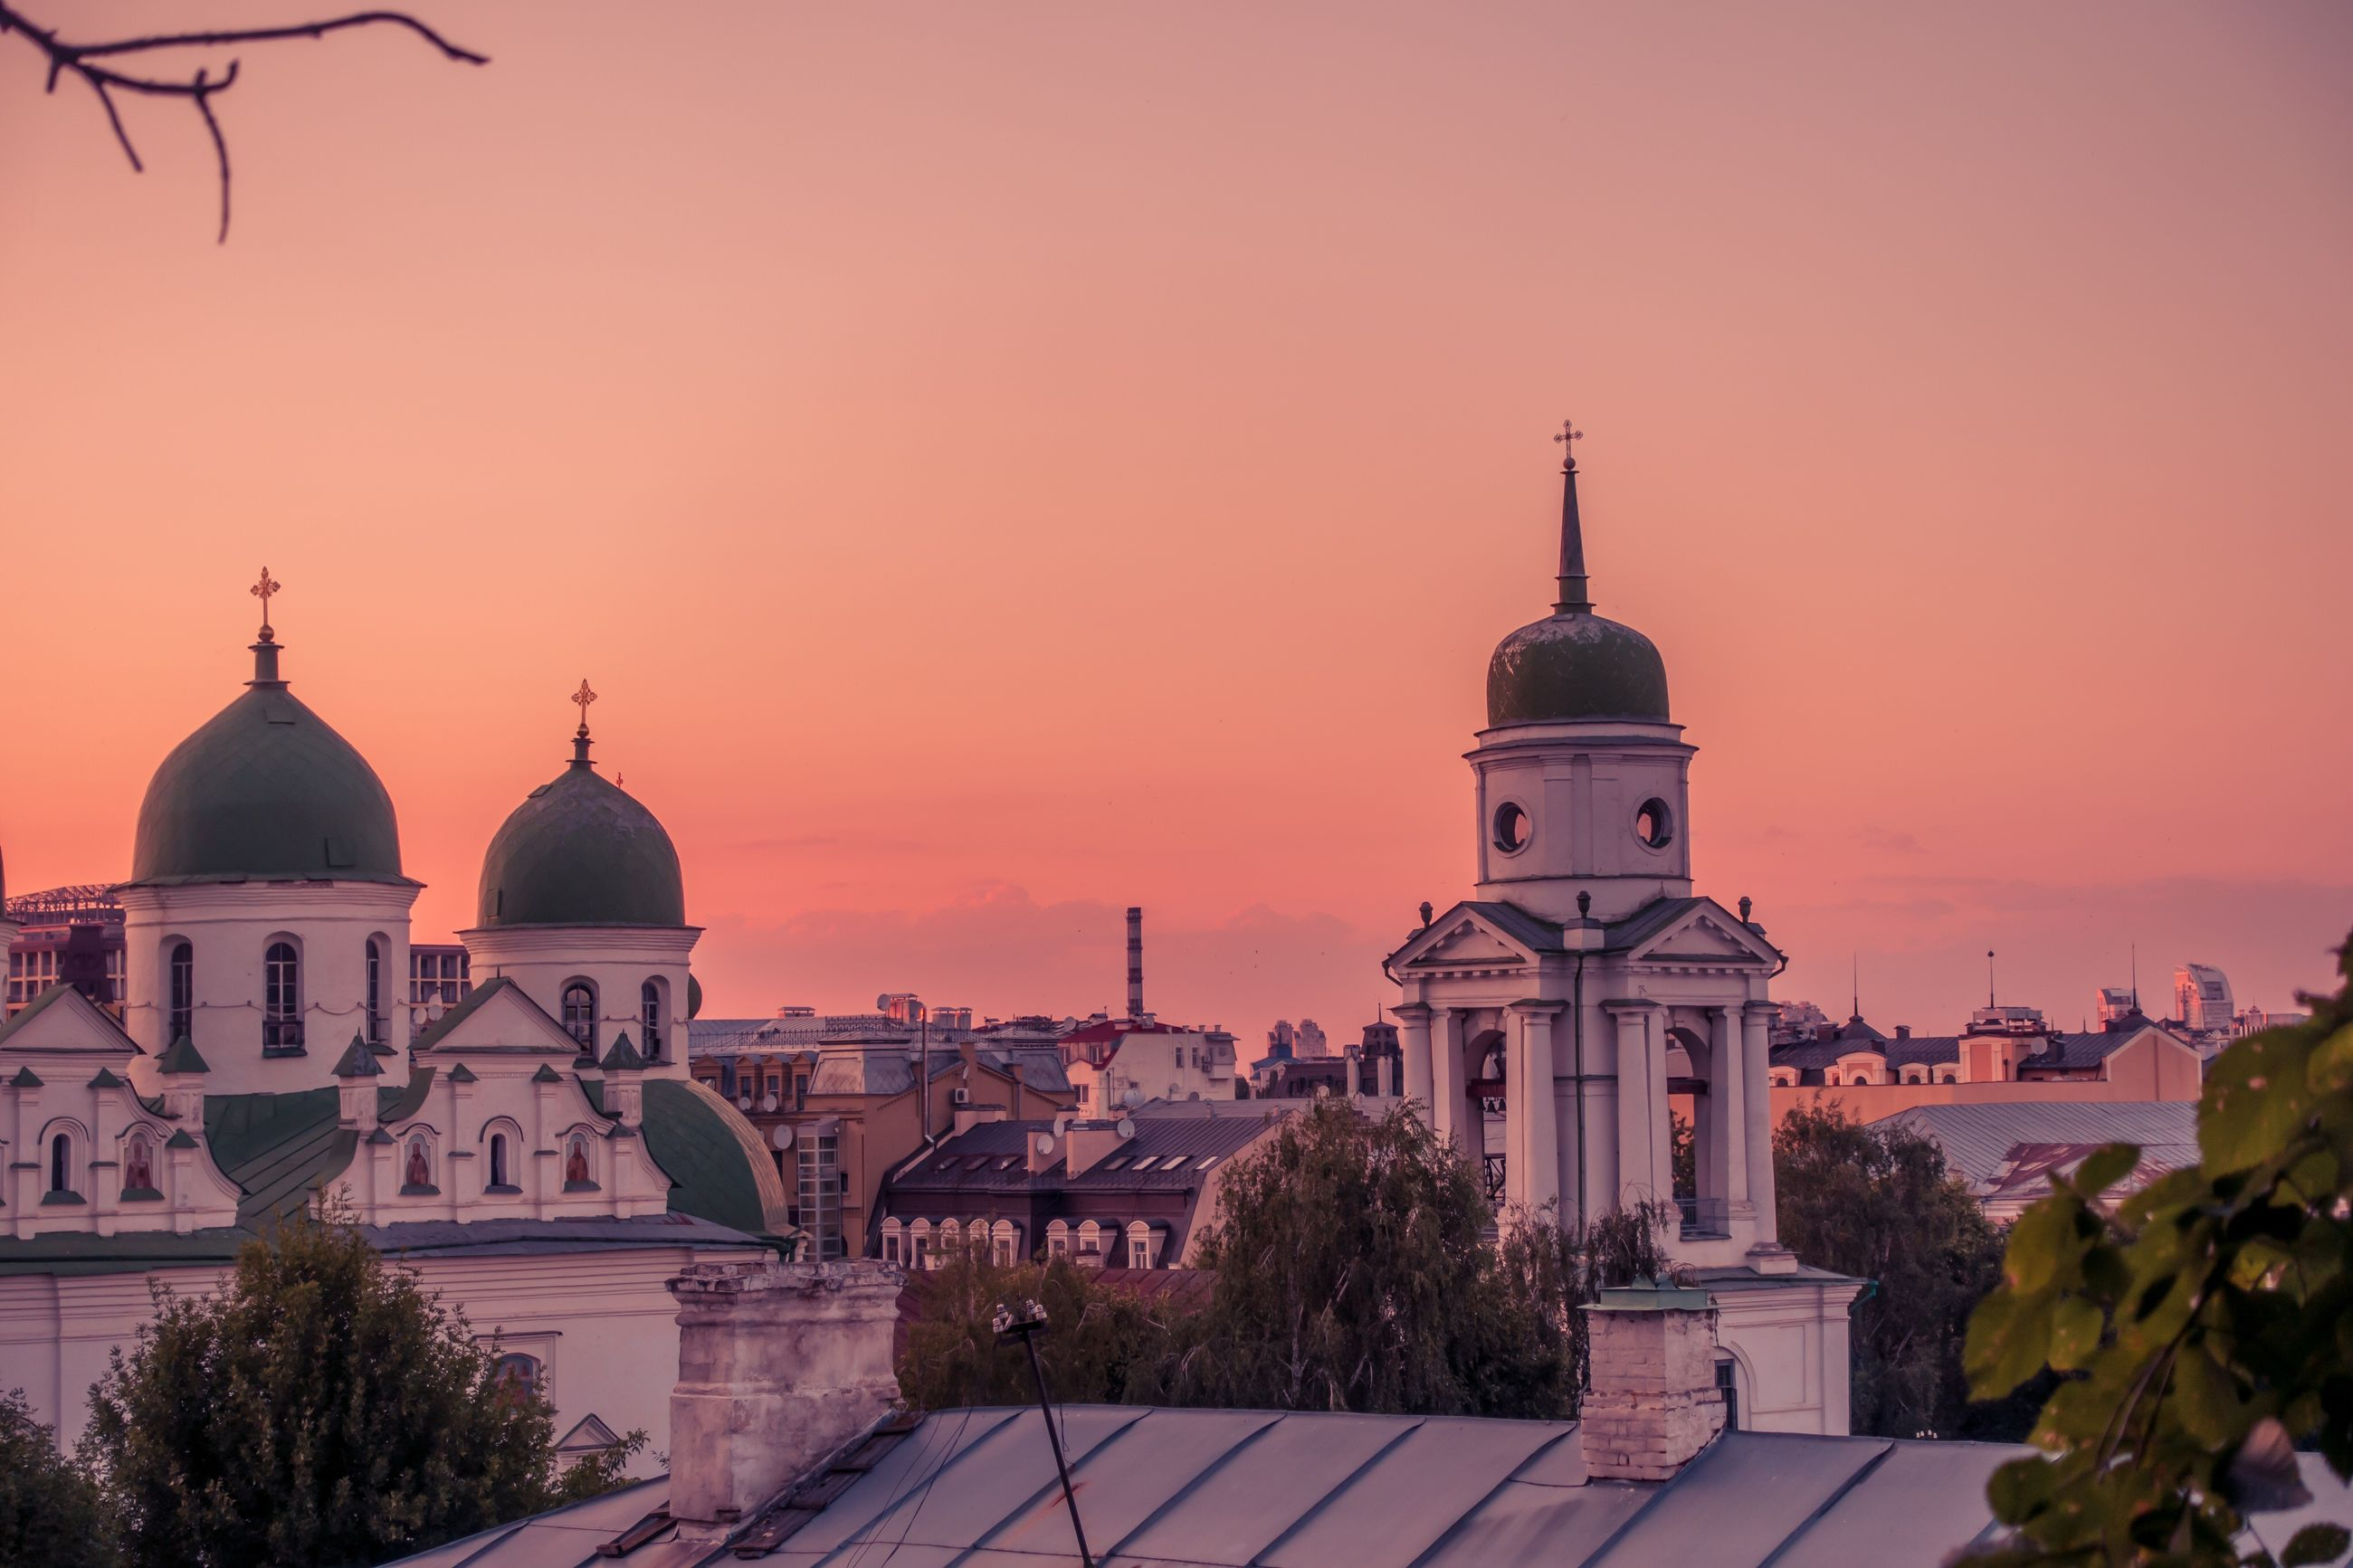 religion, place of worship, spirituality, dome, architecture, sunset, building exterior, built structure, sky, no people, outdoors, tree, nature, travel destinations, city, day